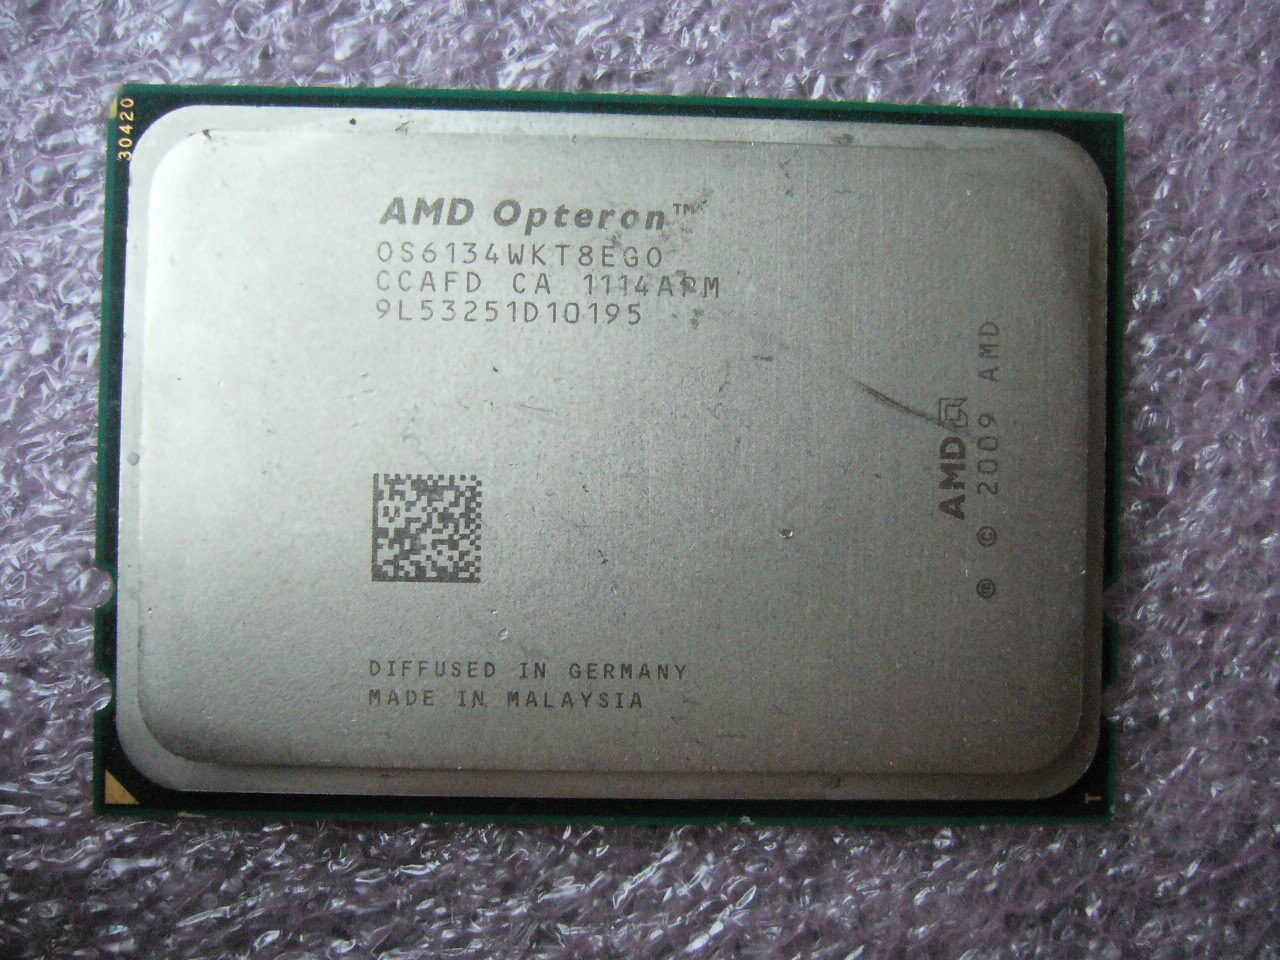 QTY 1x AMD Opteron 6134 2.3 GHz Eight Core (OS6134WKT8EGO) CPU Tested G34